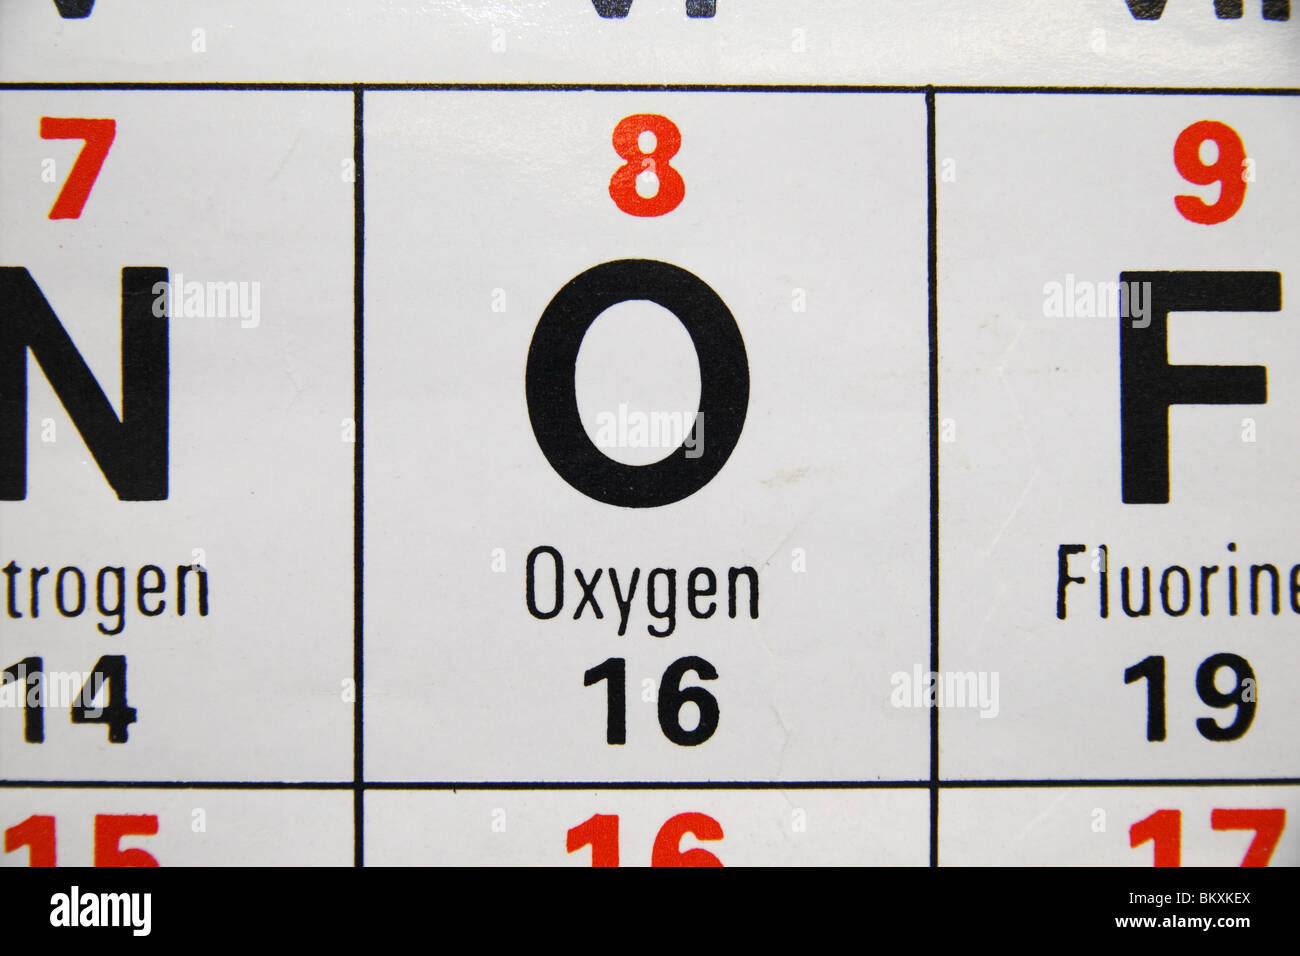 Periodic table elements oxygen stock photos periodic table close up view of a standard uk high school periodic table focusing on the flammable urtaz Images